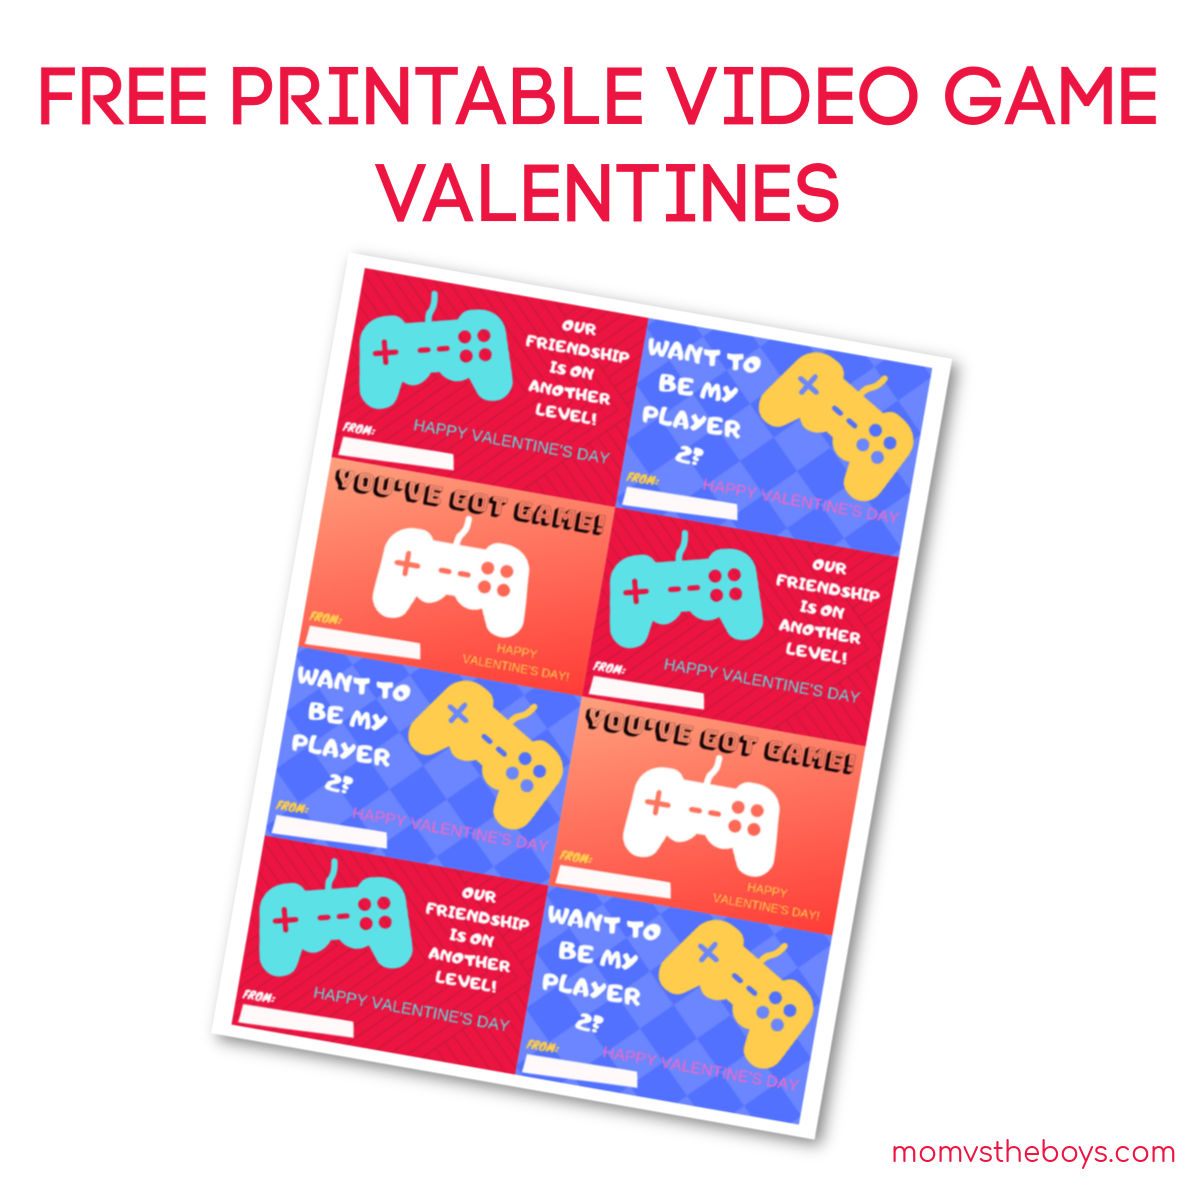 photo regarding Printable Video identified as Video clip Video game Valentines - Totally free Printable! - Mother vs the Boys